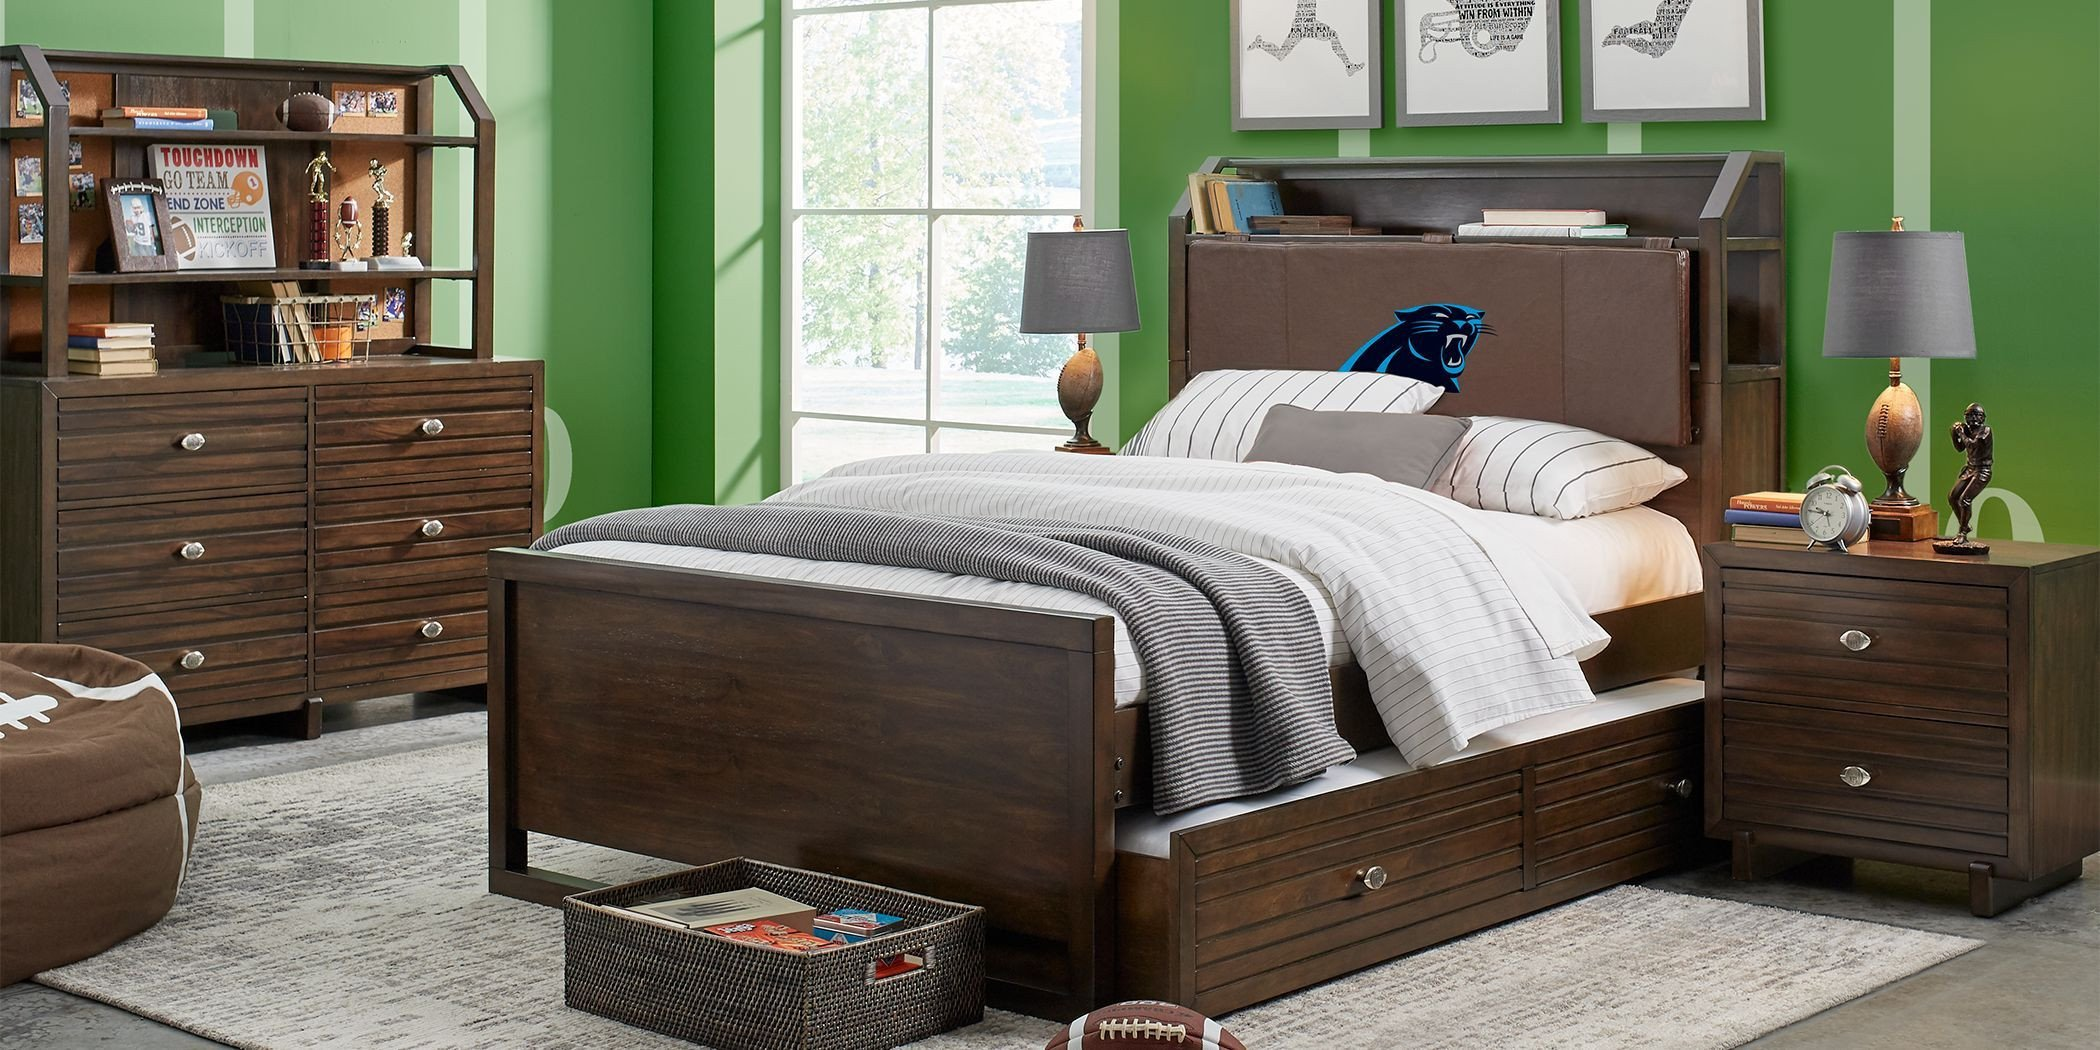 Full Bedroom Furniture Set Awesome Nfl 1st & Goal Carolina Panthers Brown 5 Pc Full Bookcase